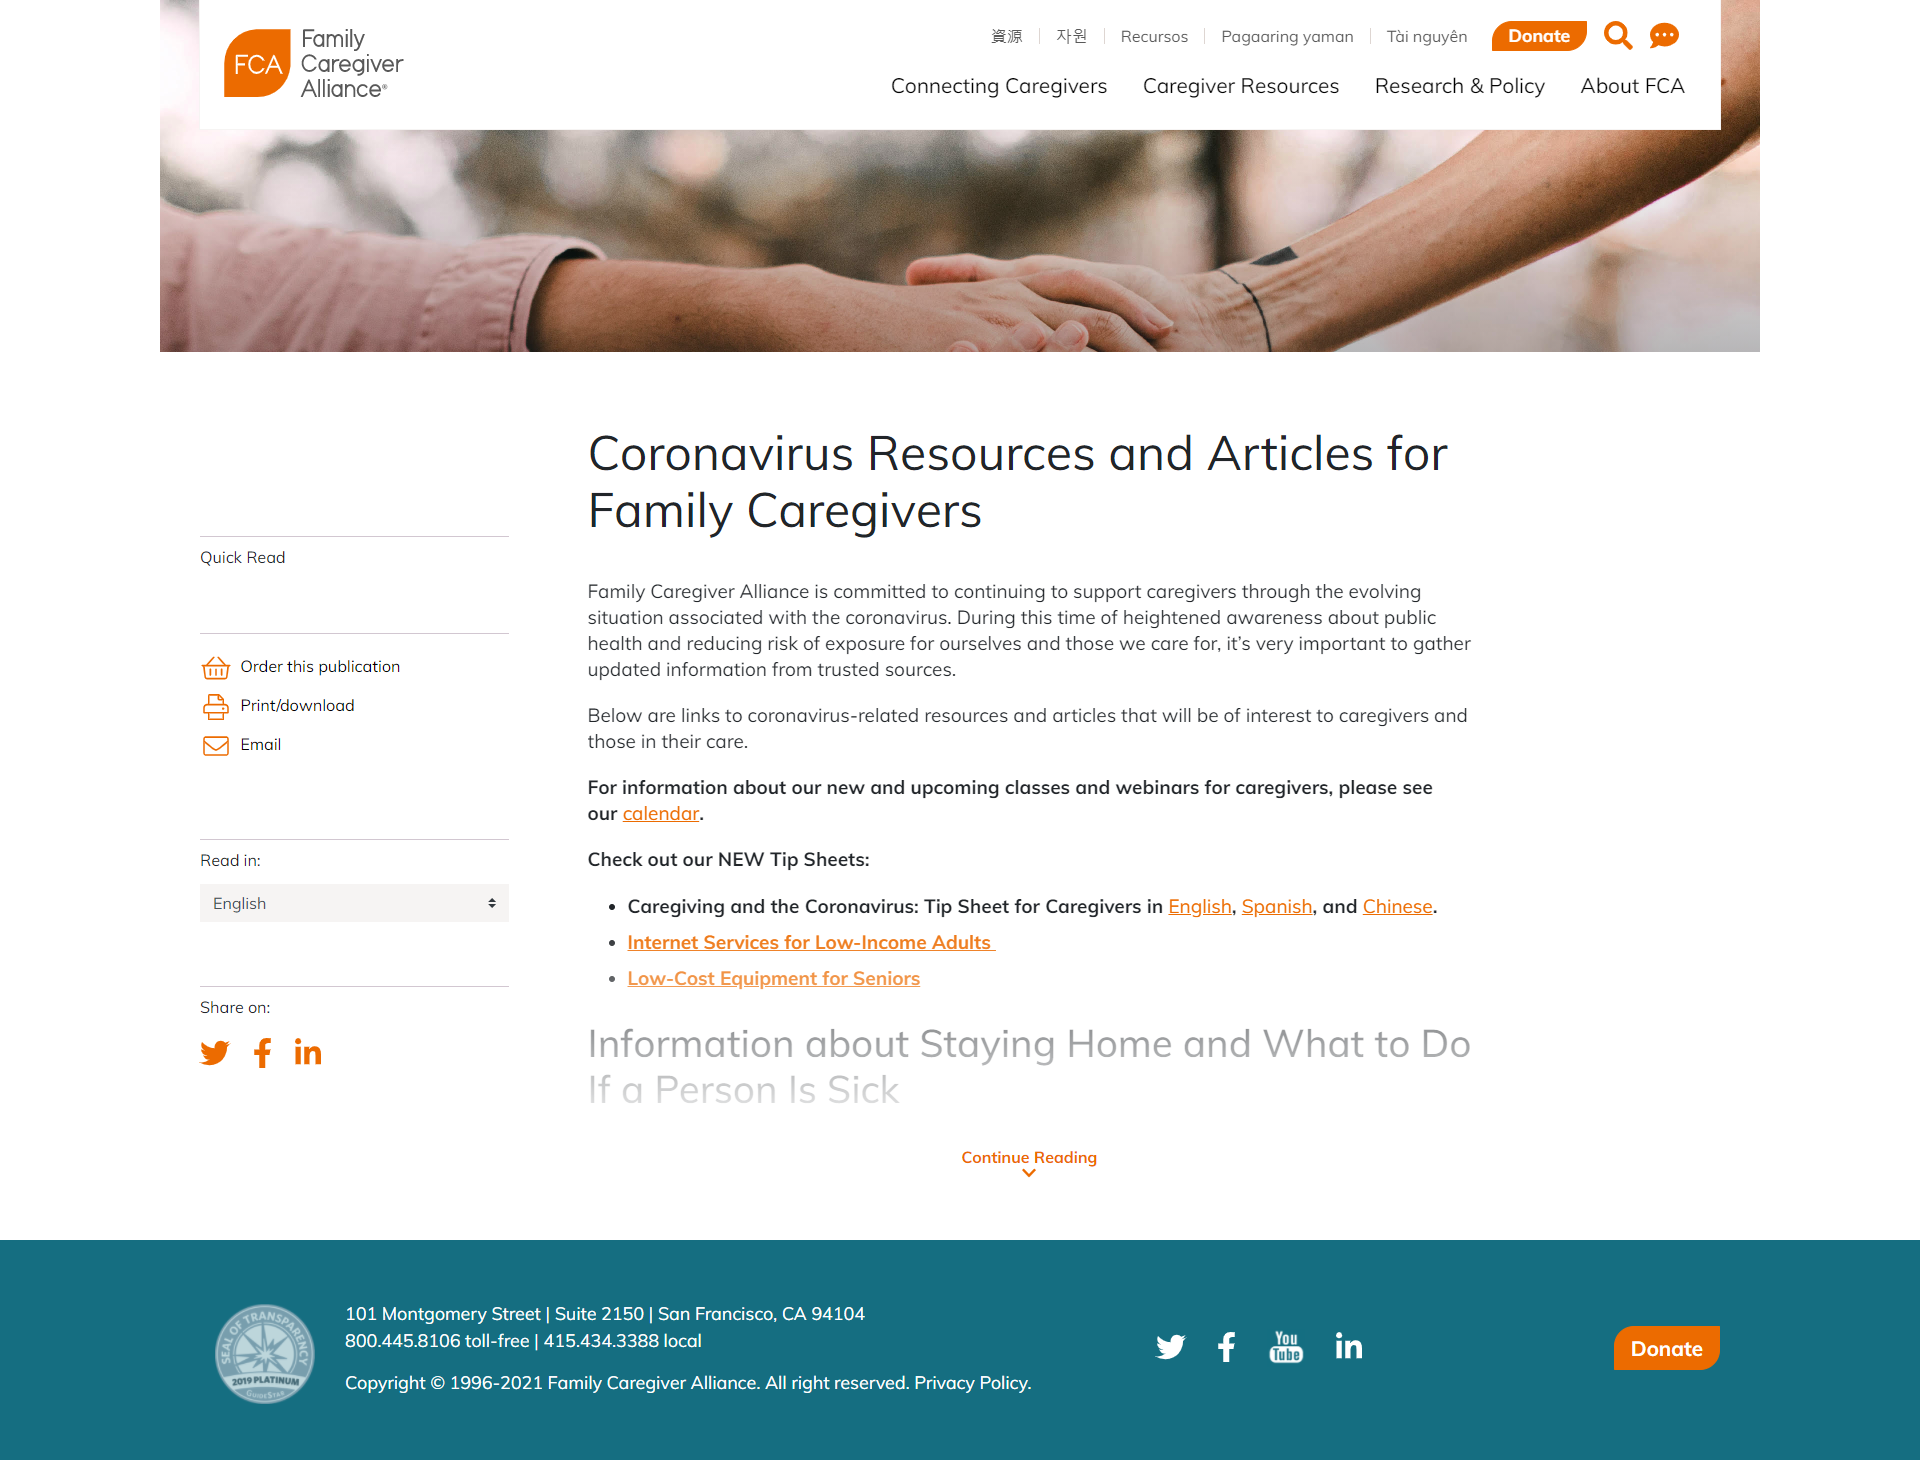 COVID-19 Resources & Articles for Family Caregivers